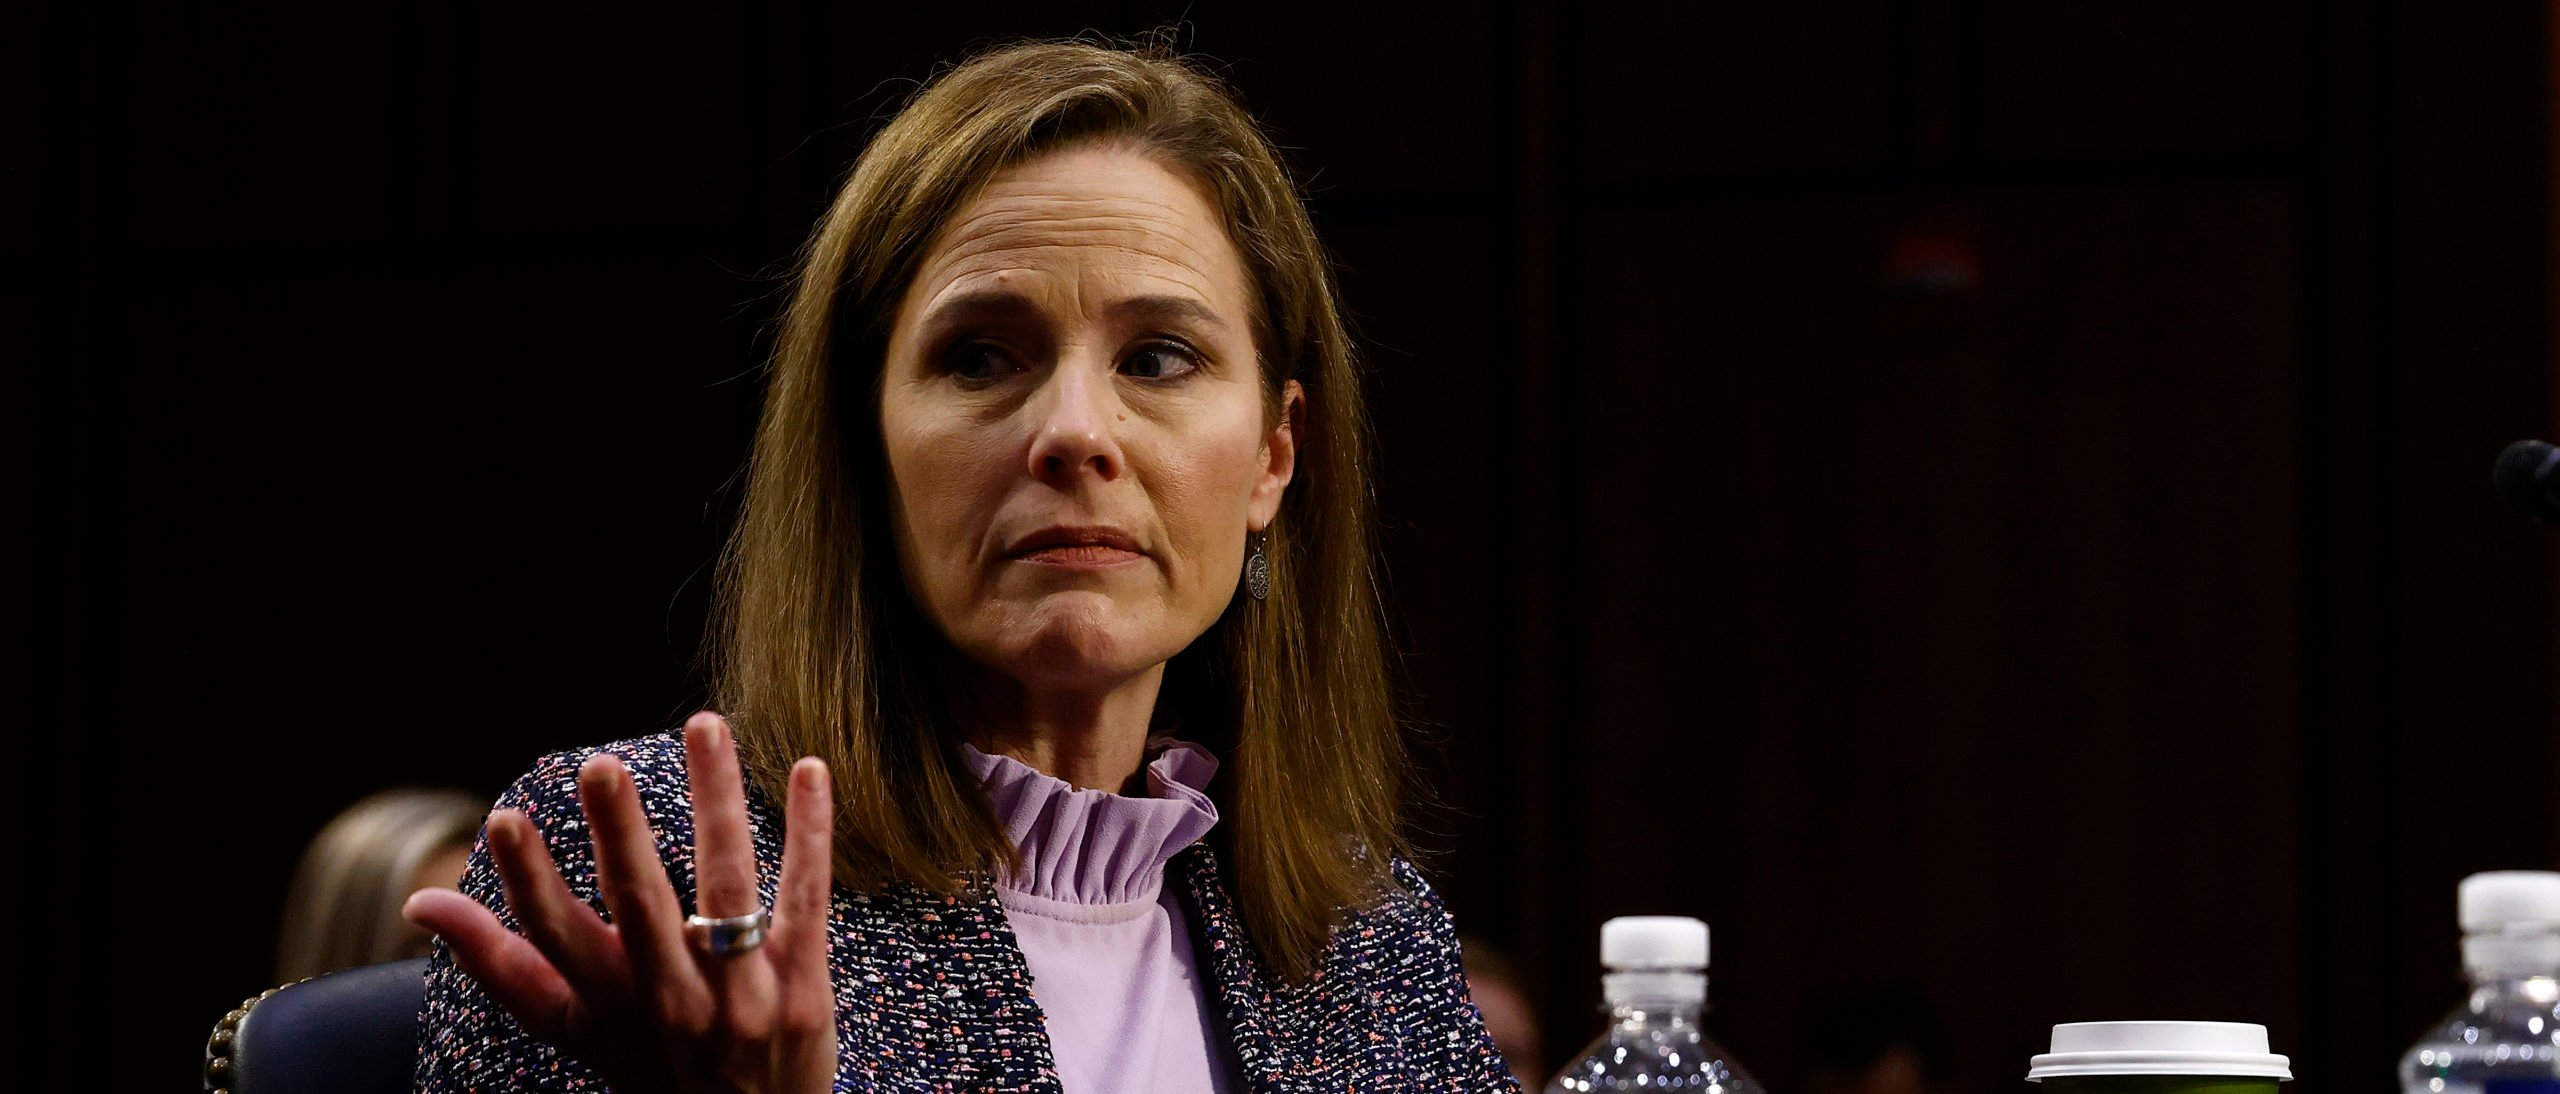 WASHINGTON, DC - OCTOBER 14: Supreme Court nominee Amy Coney Barrett speaks during her Senate Judiciary Committee confirmation hearing on Capitol Hill on October 14, 2020 in Washington, DC. (Photo by Samuel Corum/Getty Images)